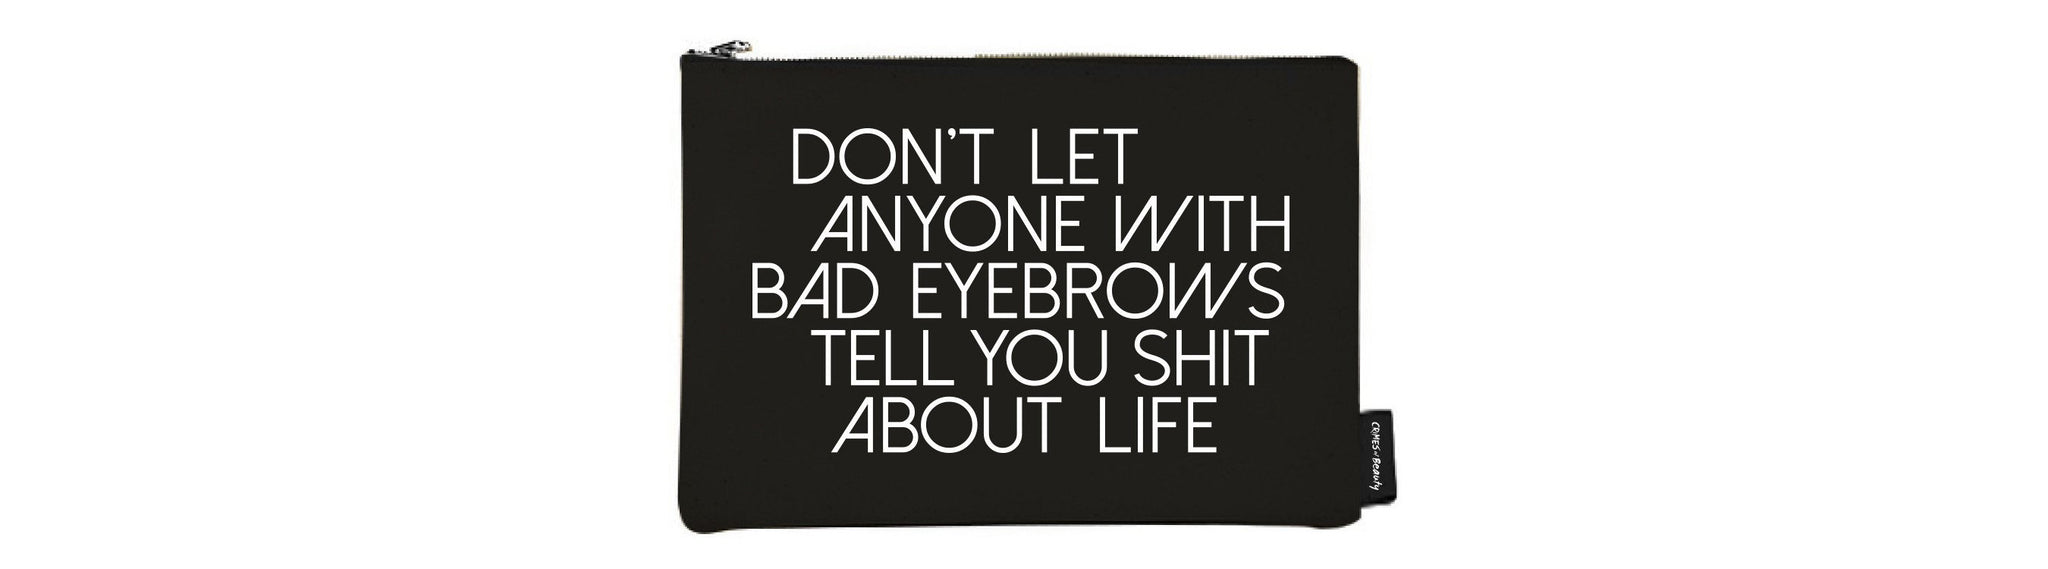 Black Canvas Makeup Bag Don't let anyone with bad eyebrows tell you shit about life